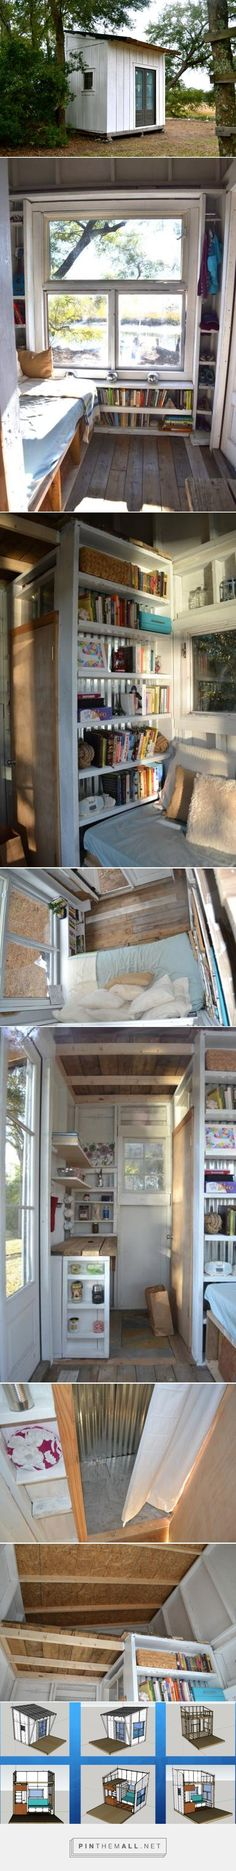 8 ft x 8 ft (96 sq ft) tiny house built from salvage for less than $400 sofa/bed pulls out to full size, tall shelves act as ladder to loft (for another bed or storage), lots of salvaged windows enlarge the feeling of space, sink for the kitchen area to be added soon - Chucktown Tiny Houses - Thesis Tiny House found at: http://chucktowntinyhouses.wikispaces.com/Thesis+Tiny+House - created via http://pinthemall.net